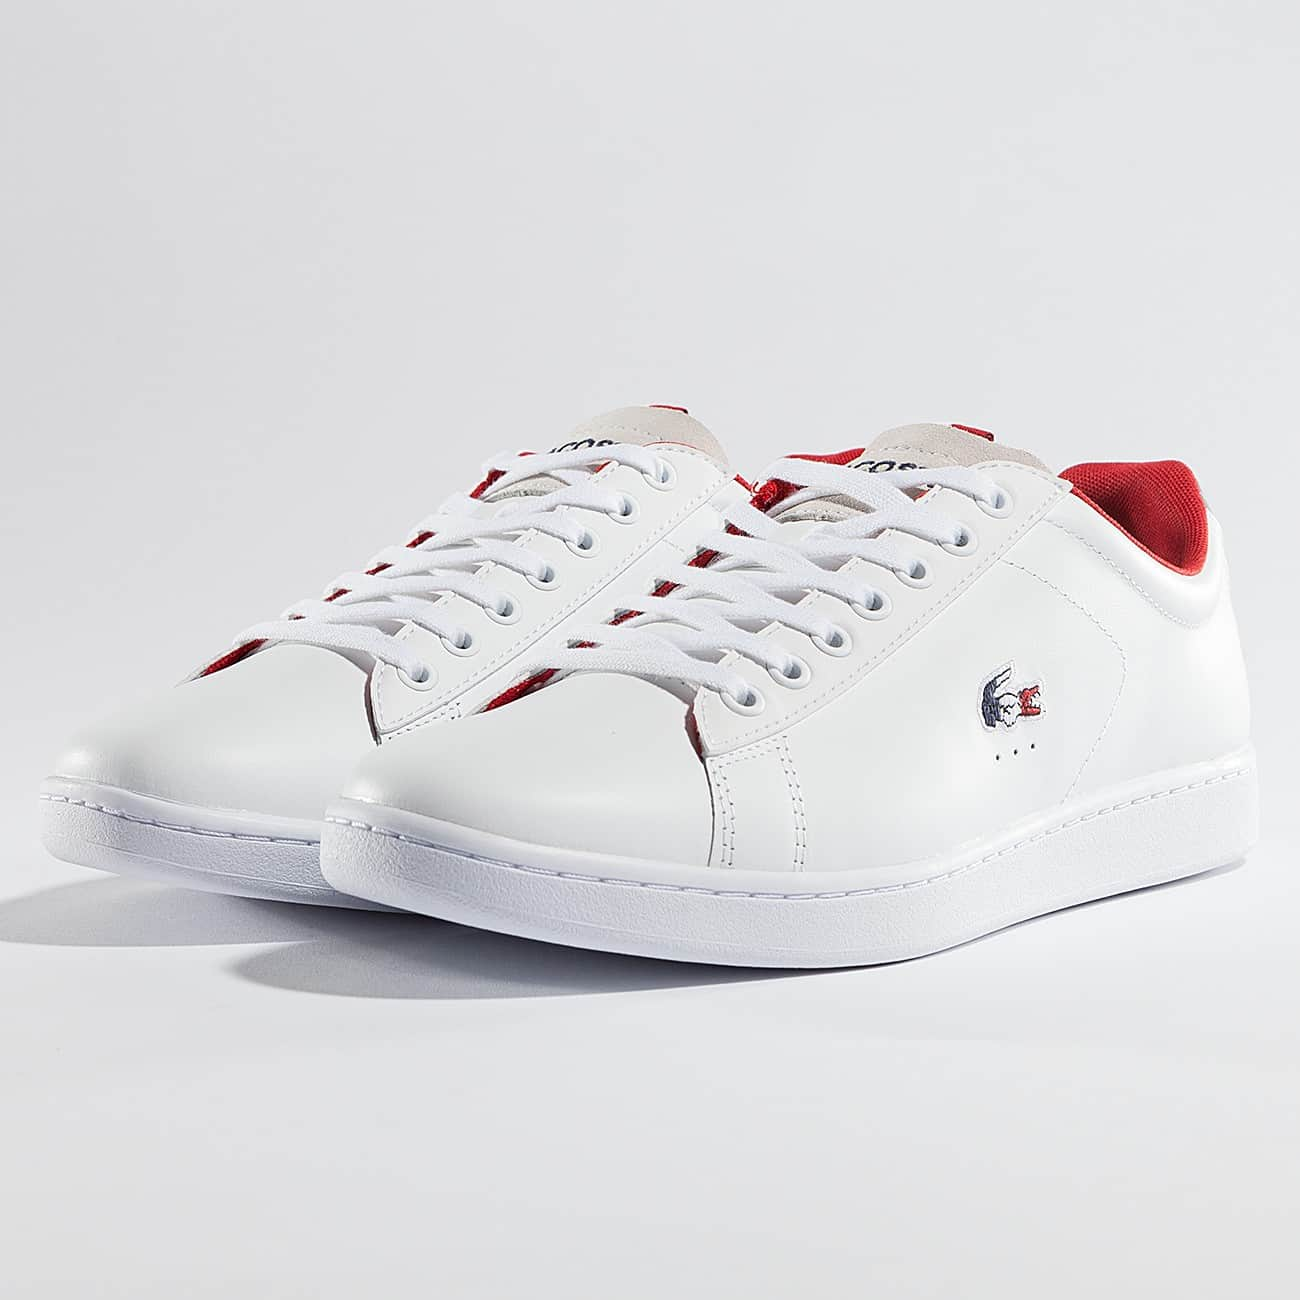 Lacoste Carnaby Retro Carnaby Lacoste Lacoste Chaussure Carnaby Chaussure Blanche Retro Blanche Chaussure EqSnwcppFB